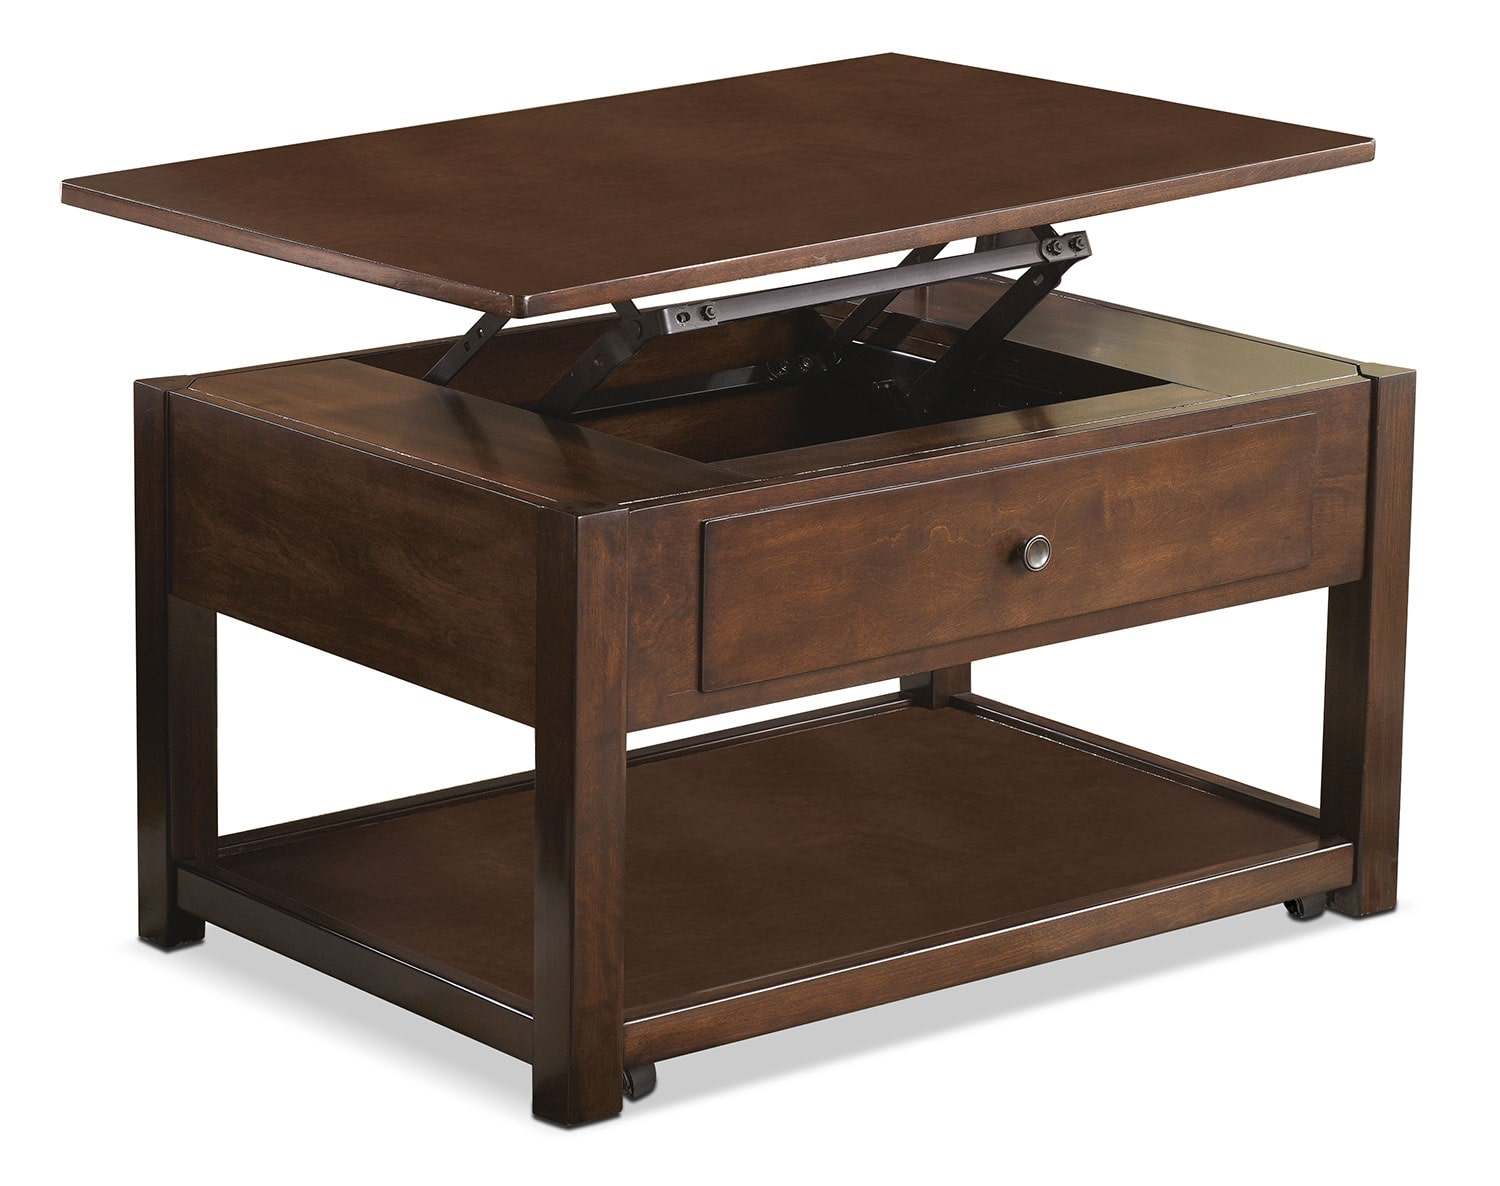 Marion coffee table with lift top and casters united furniture warehouse Coffee tables with casters